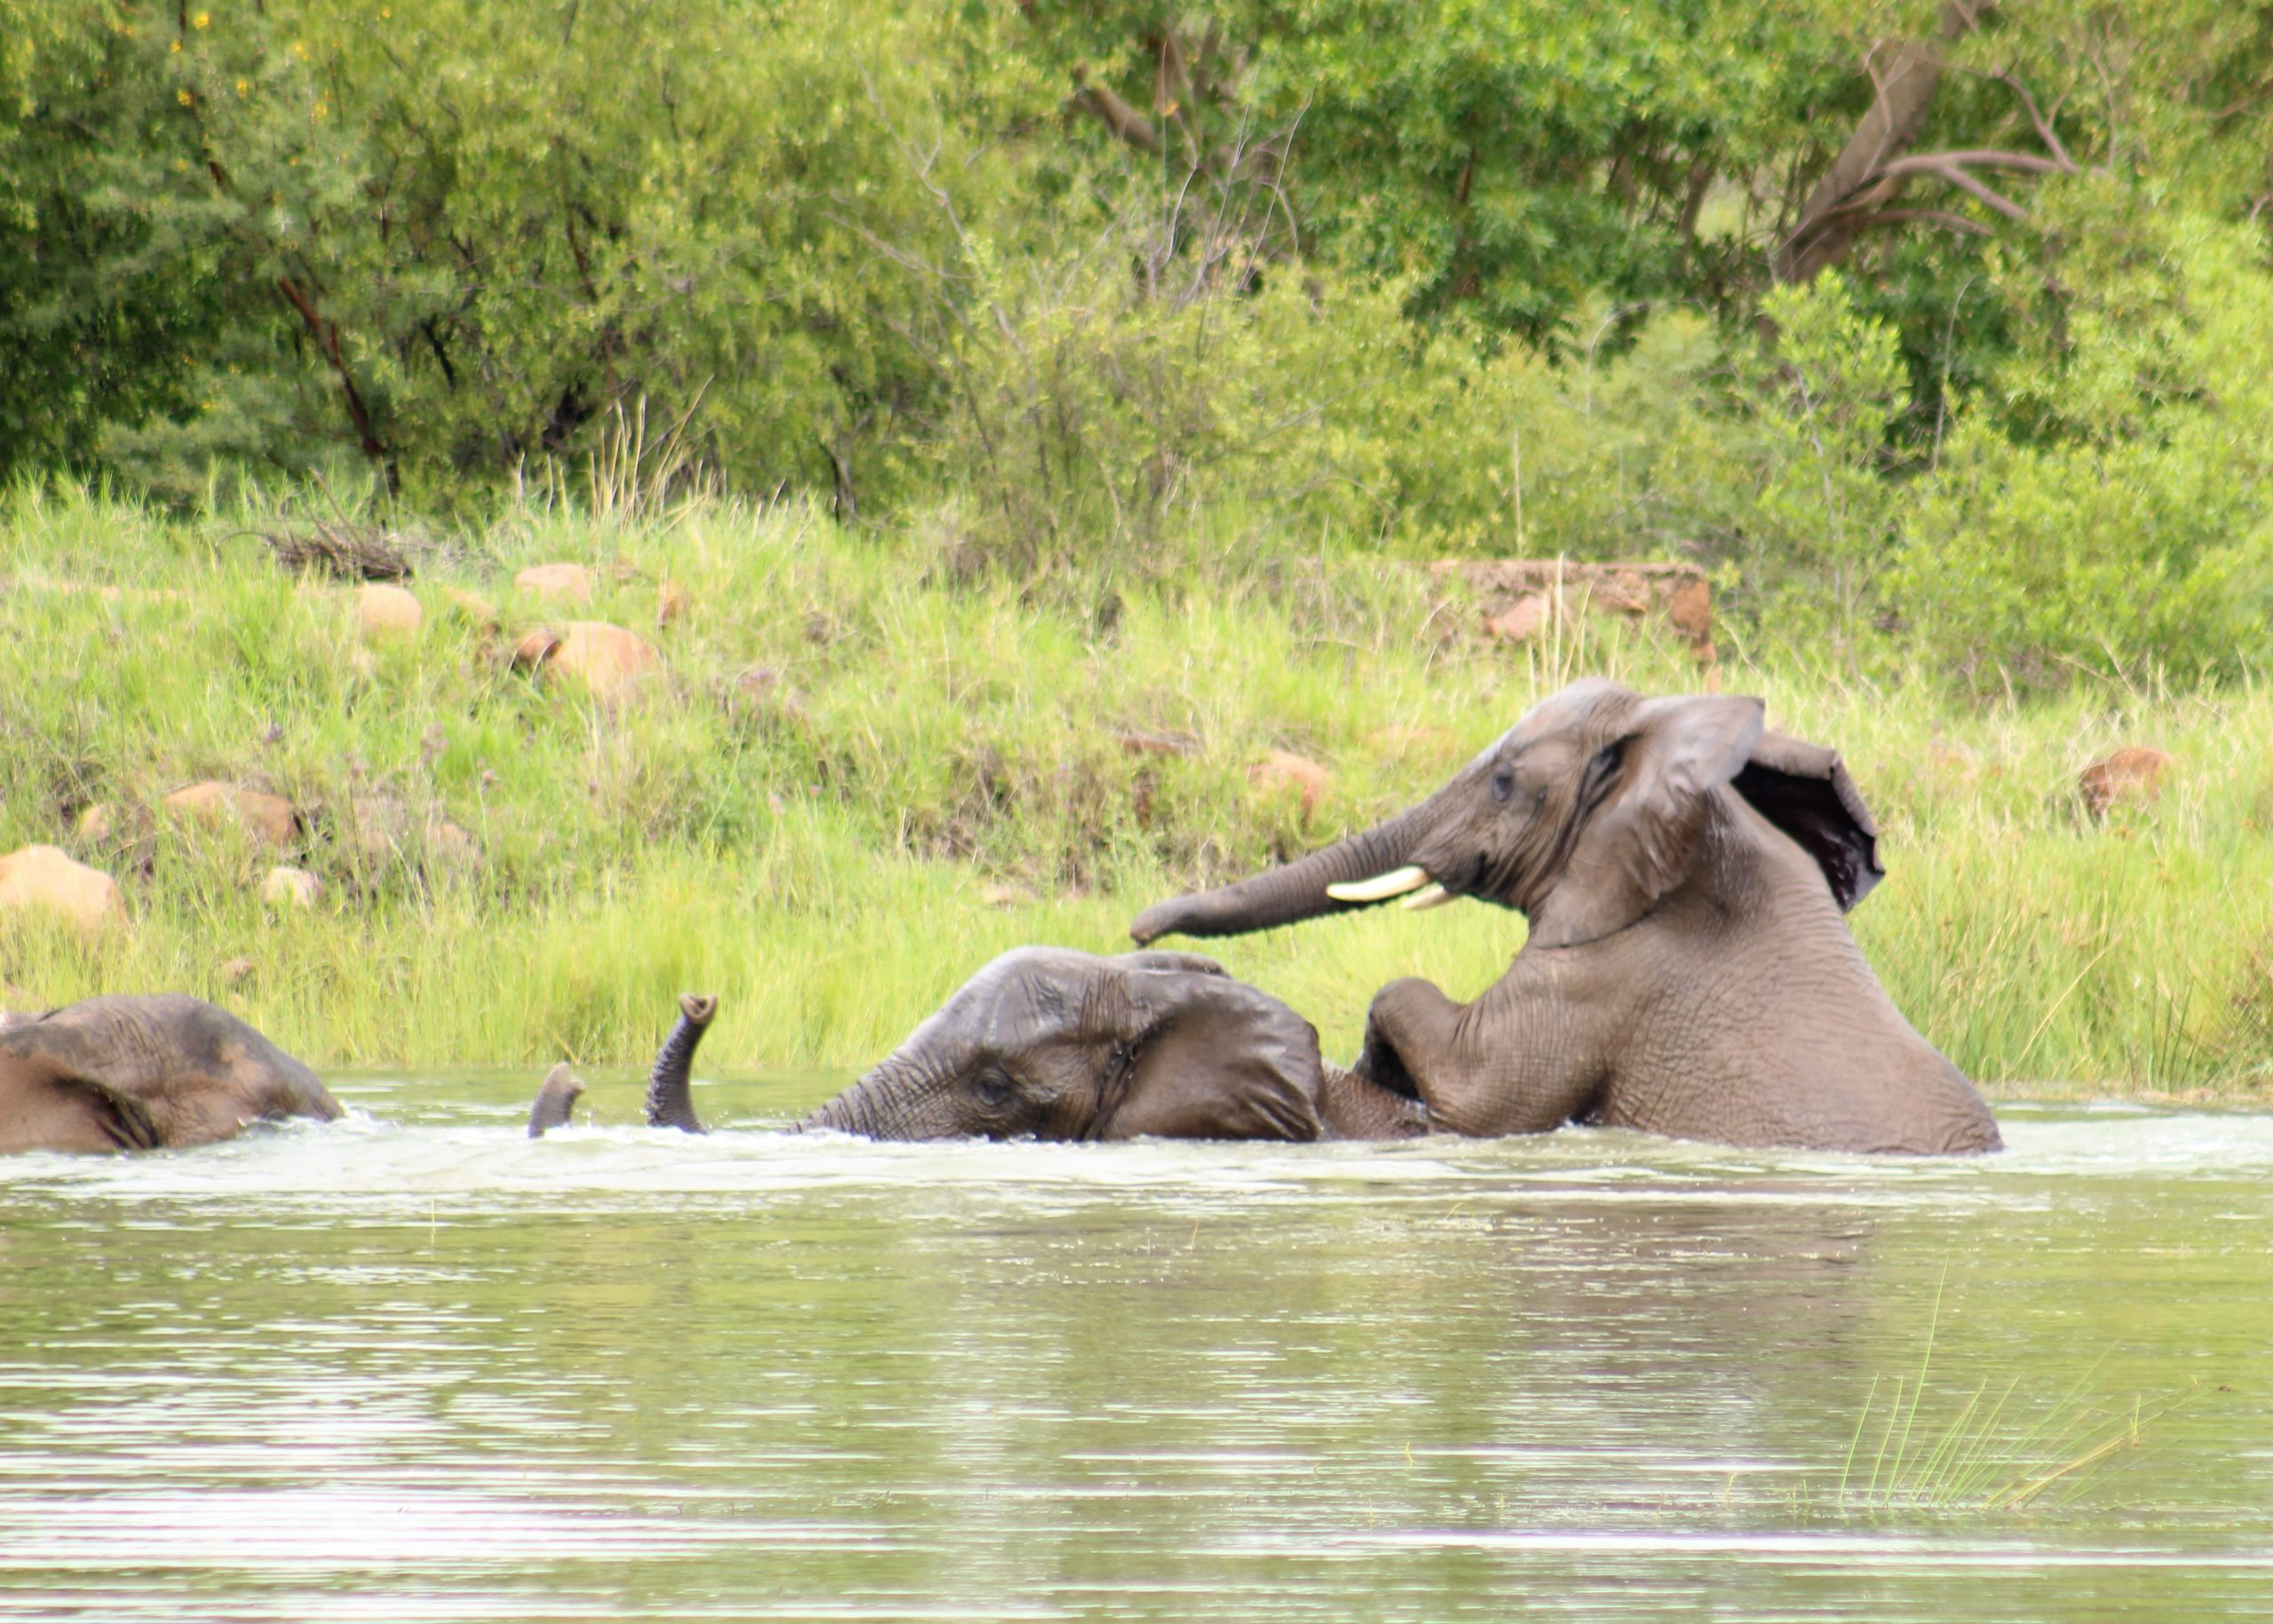 Elephants mating on our game drives in South Africa